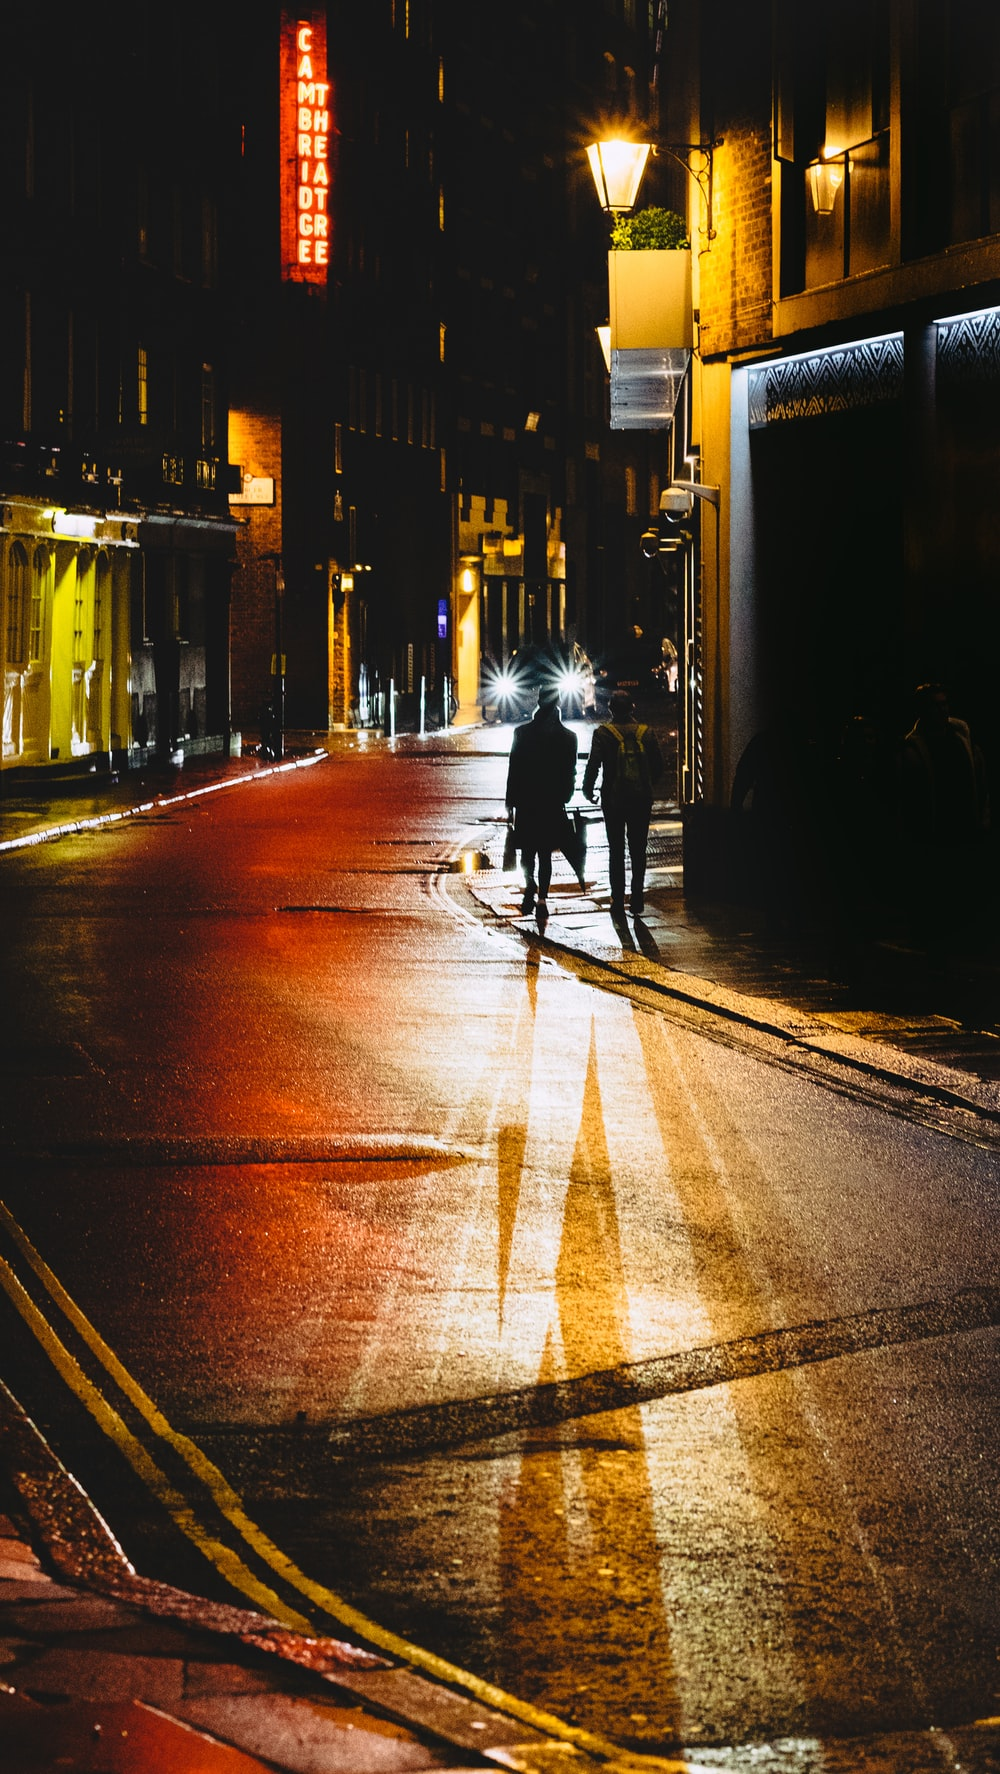 two people walking on street beside building during night time